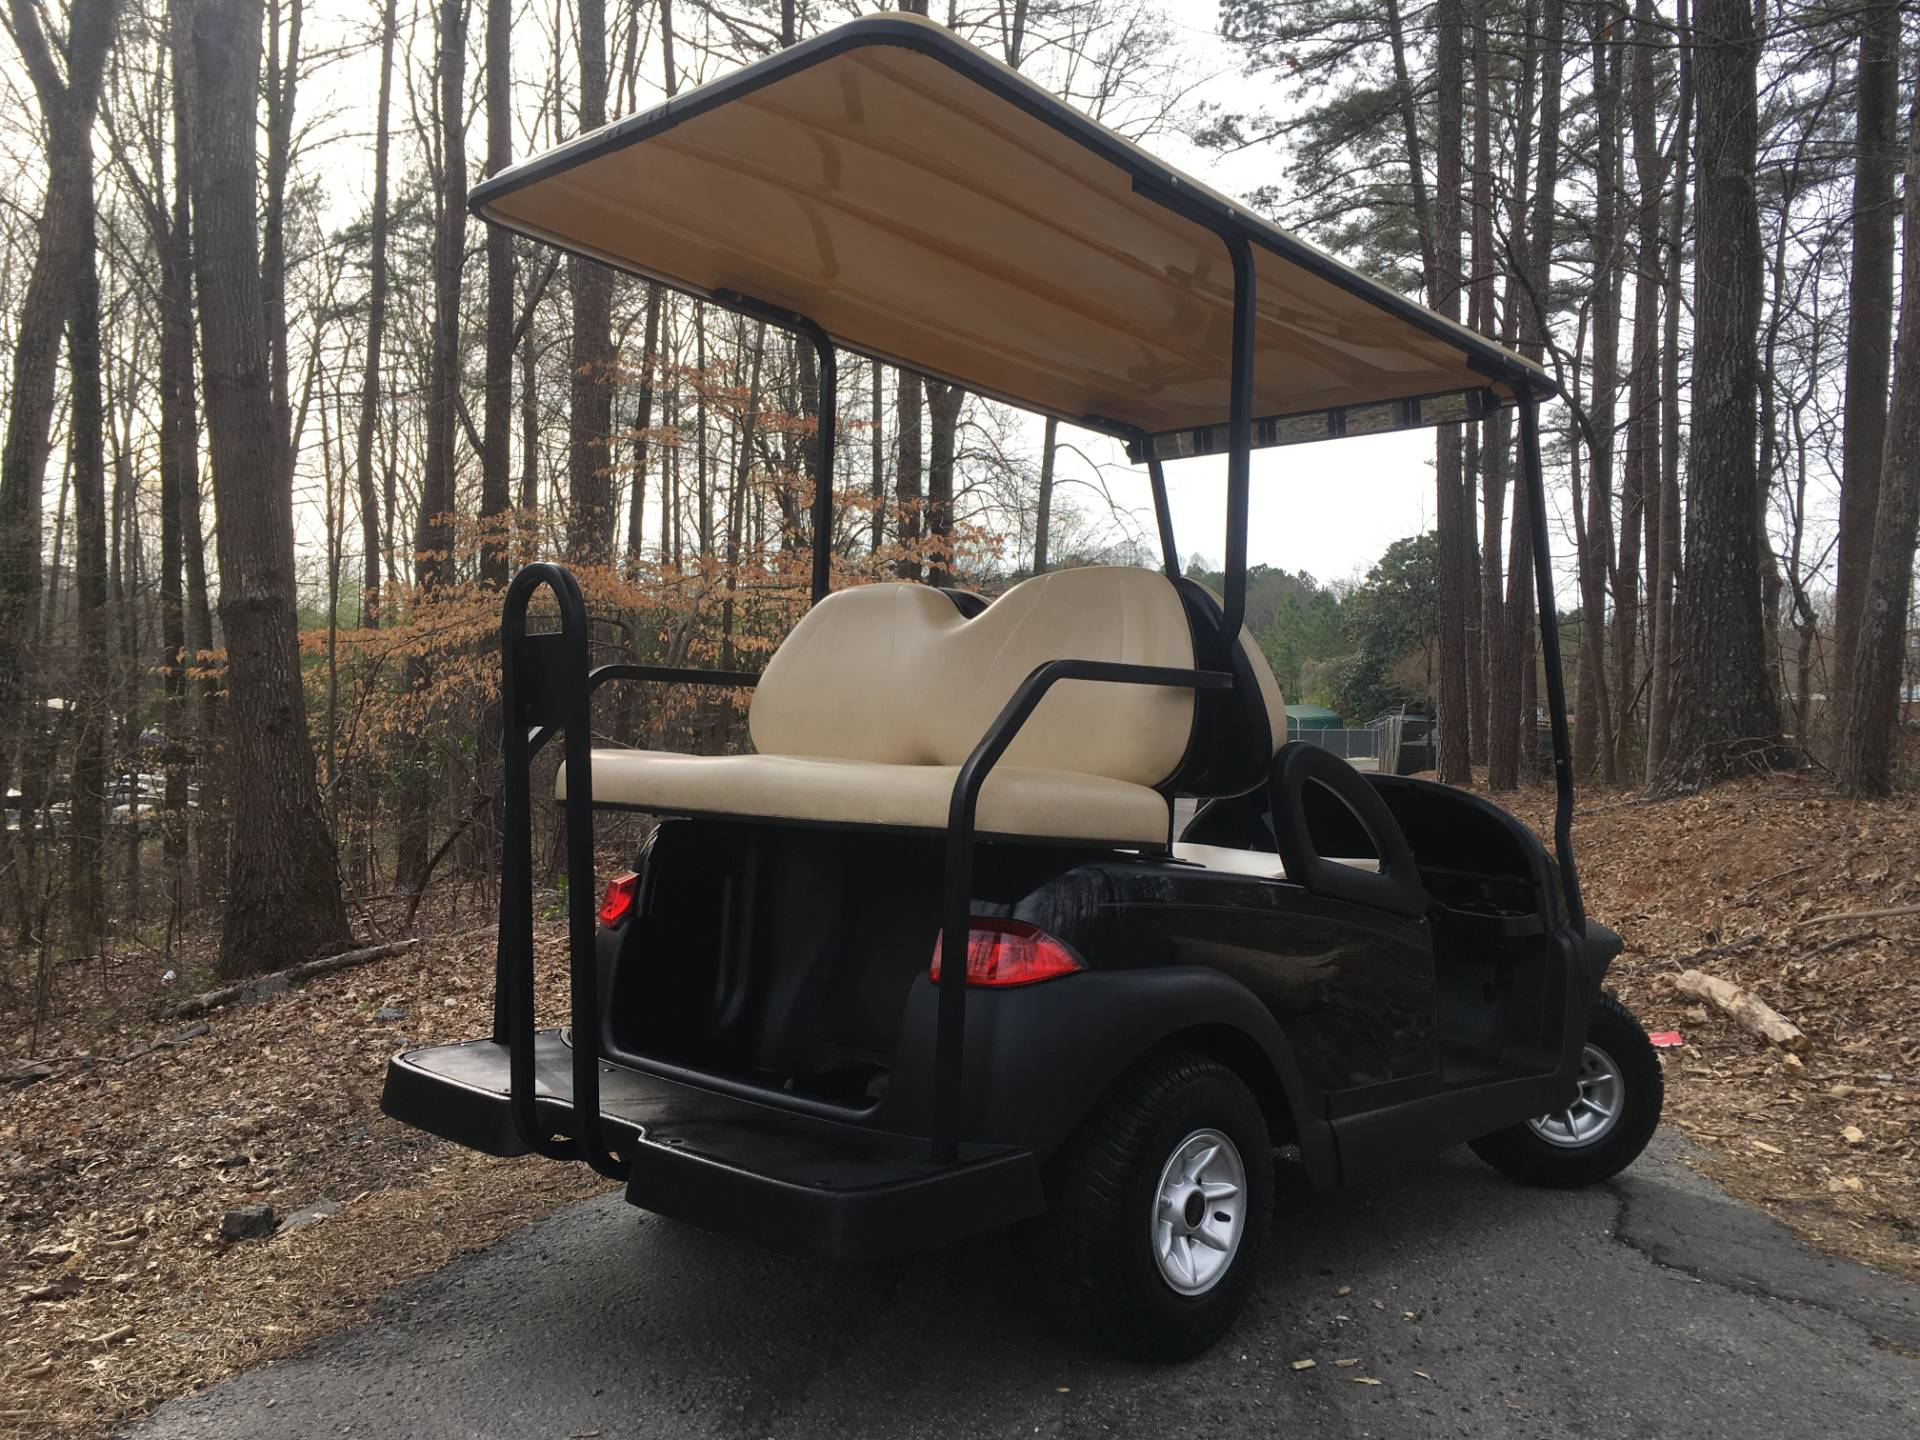 2009 Club Car Precedent i2L - Electric in Woodstock, Georgia